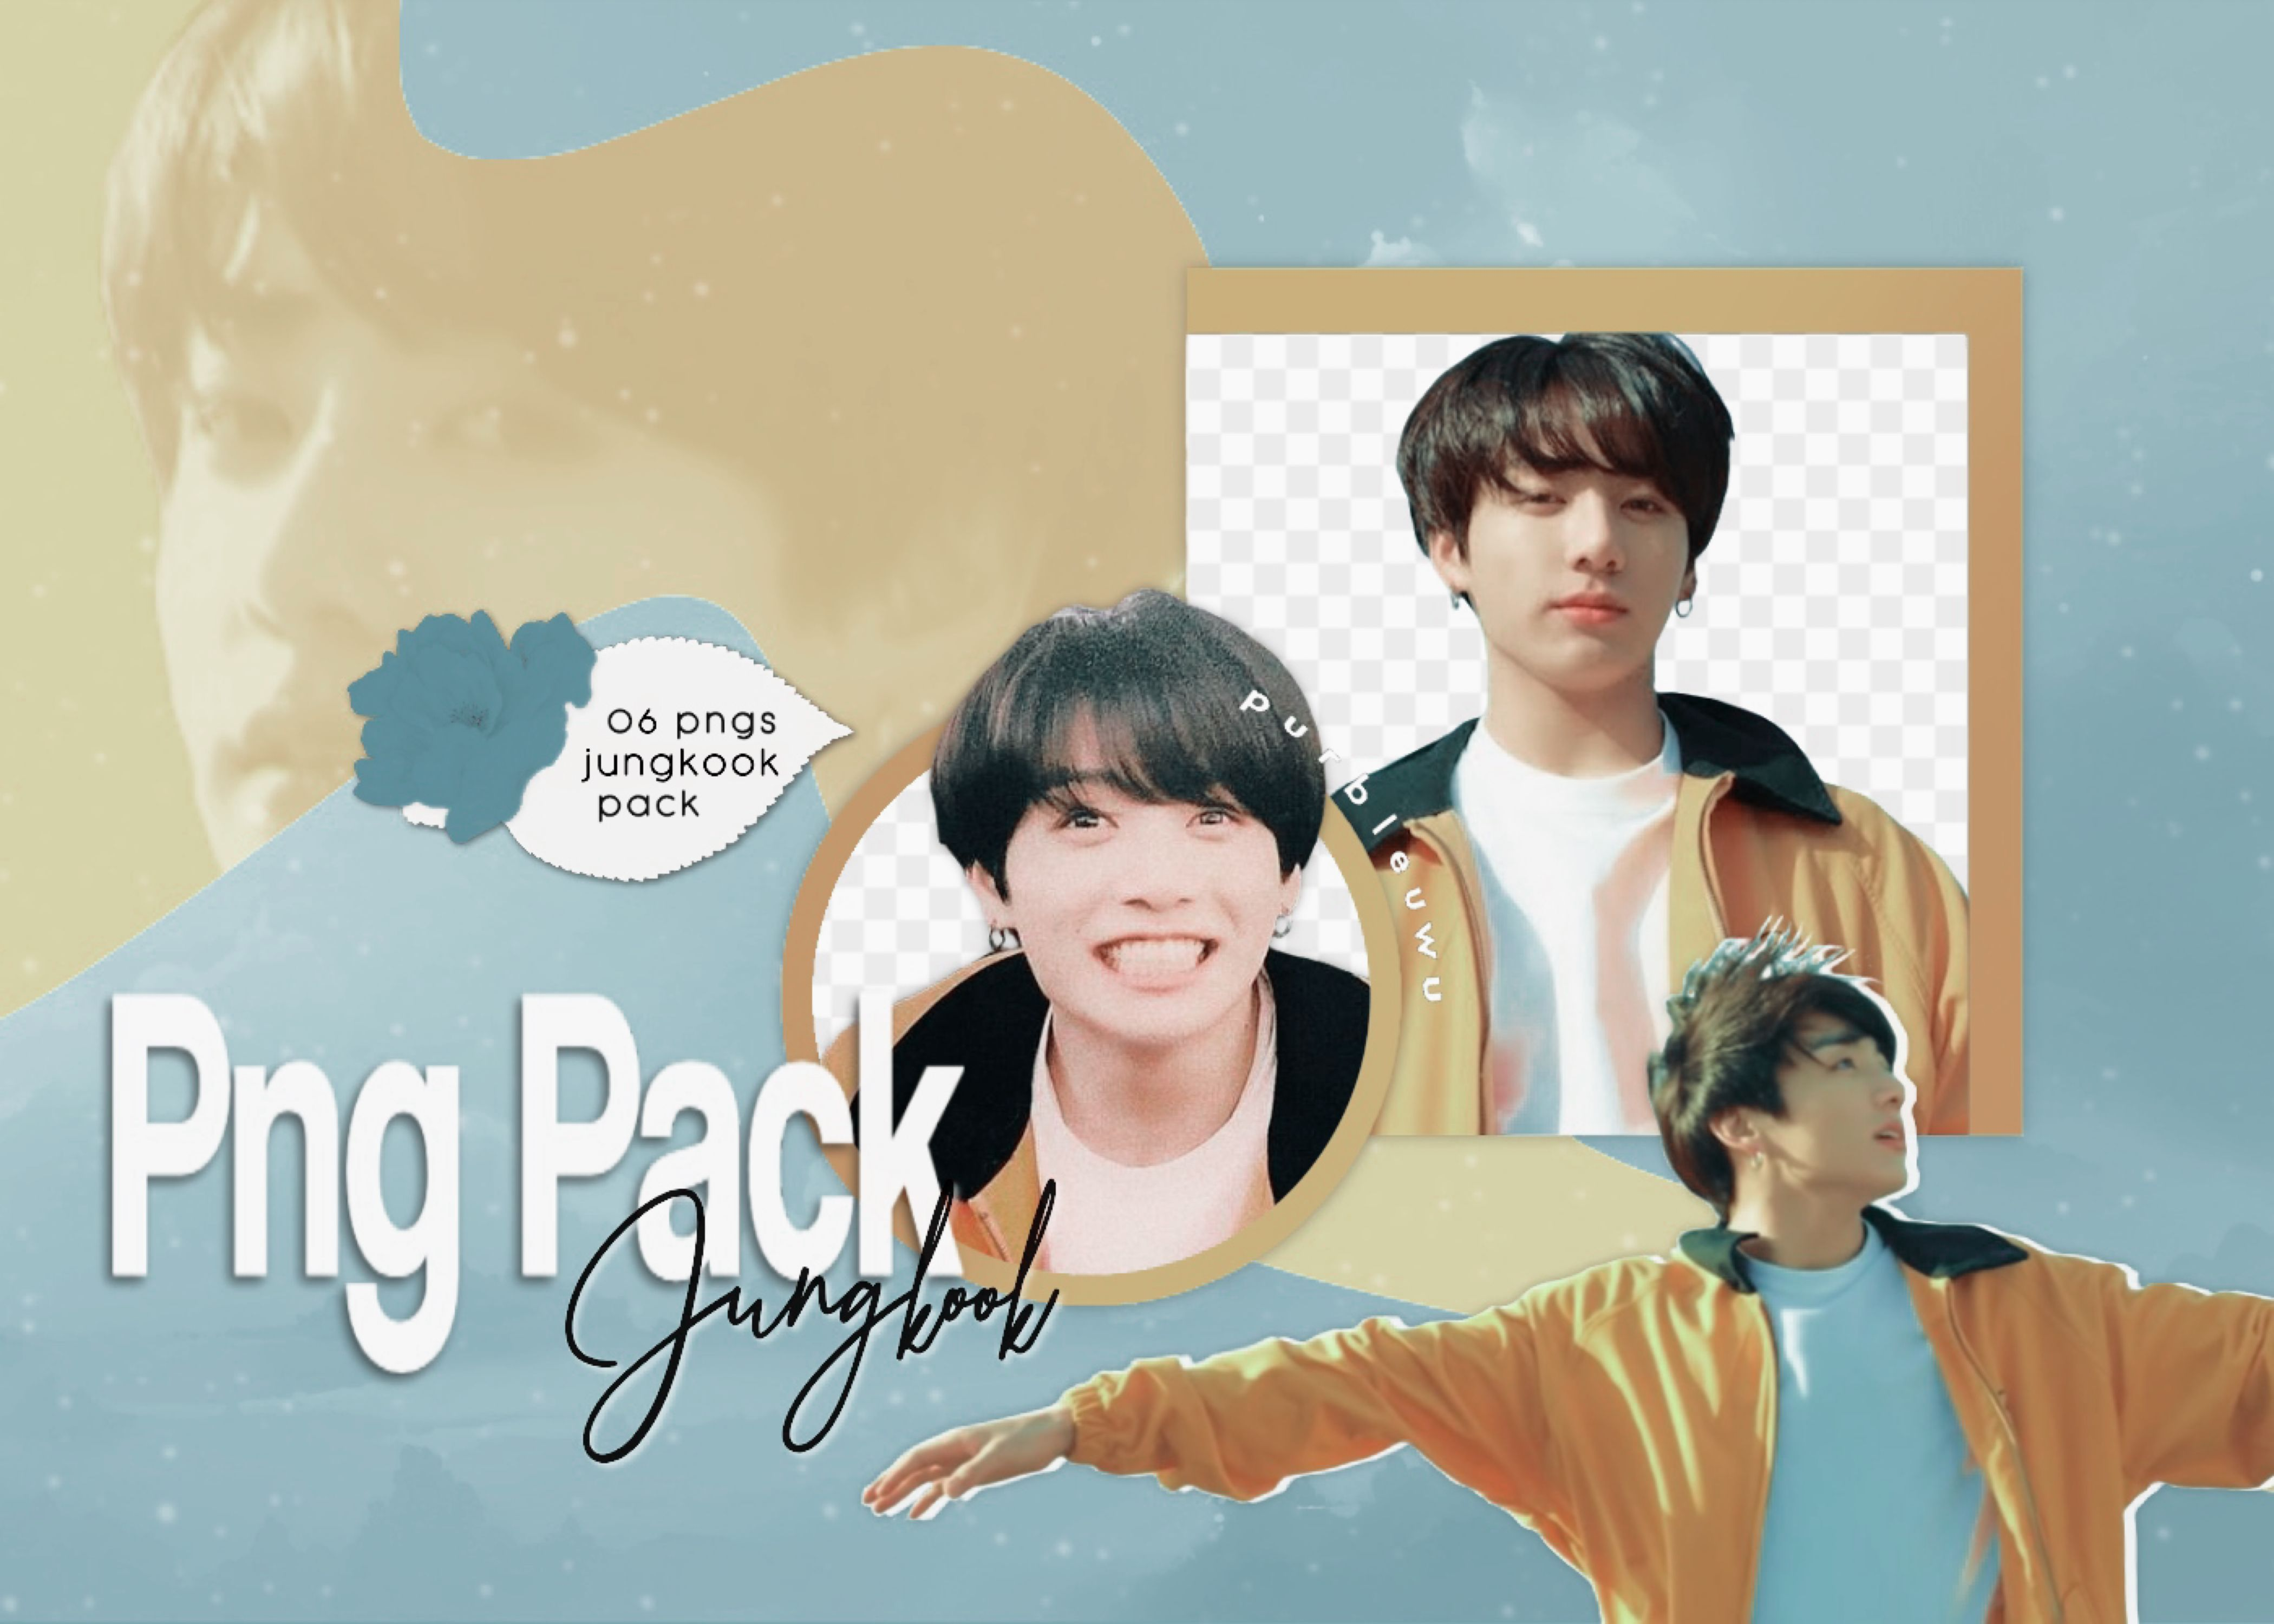 Png Pack Bts Jungkook Euphoria By Purbleuwu On Deviantart Jungkook Bts Jungkook Euphoria